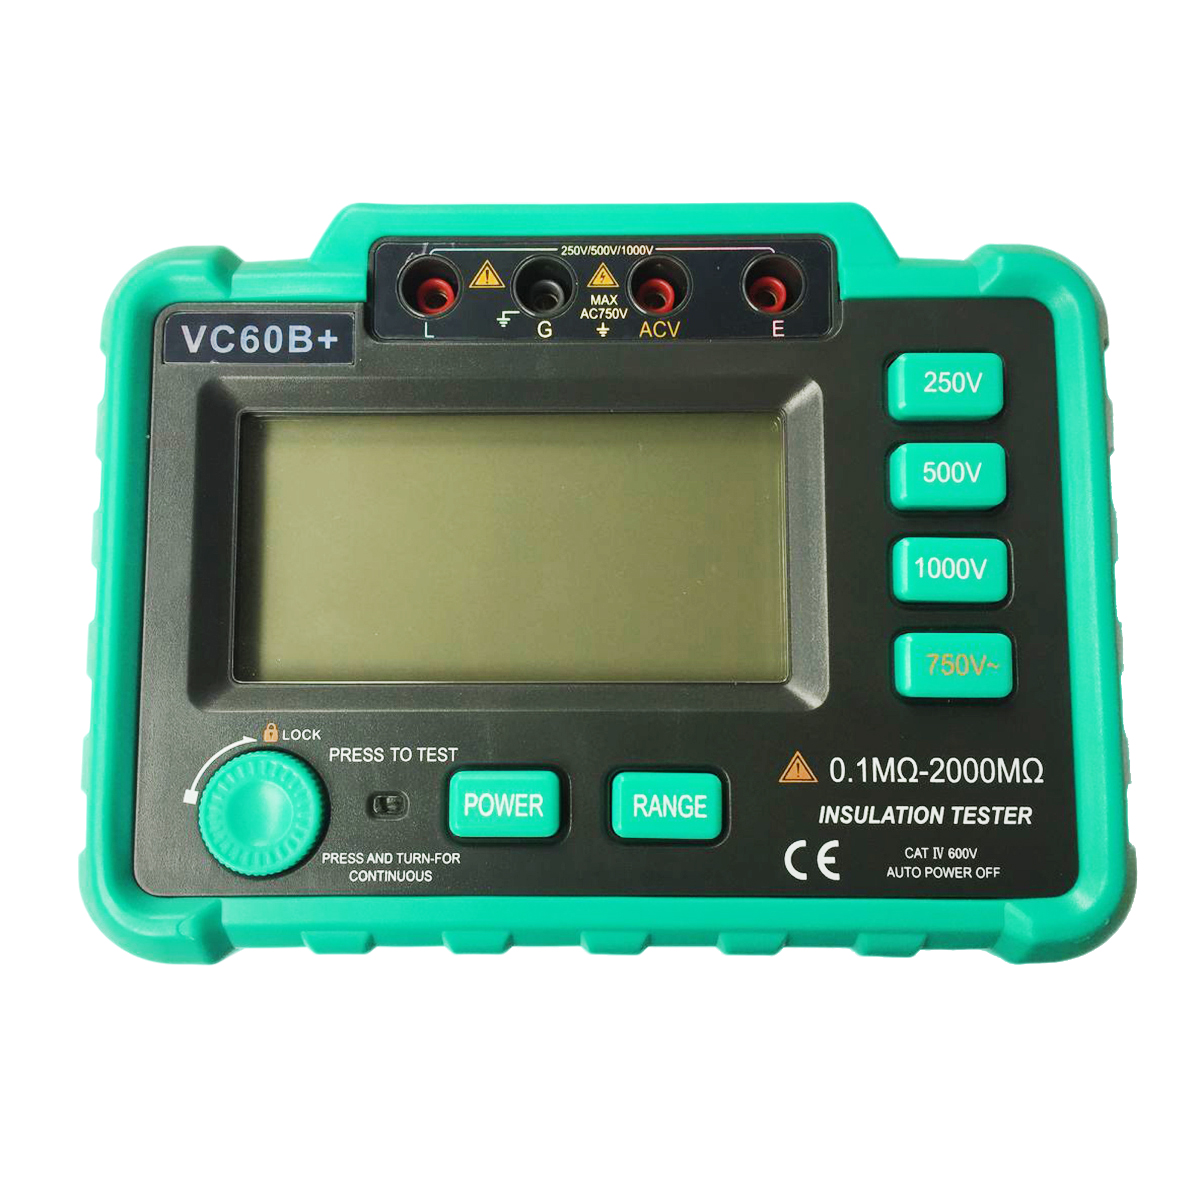 THGS VC60B+ Digital Insulation Resistance Tester Megohm Meter Megohmmeter earth ground resistance impedance tester DC250V/500V цена